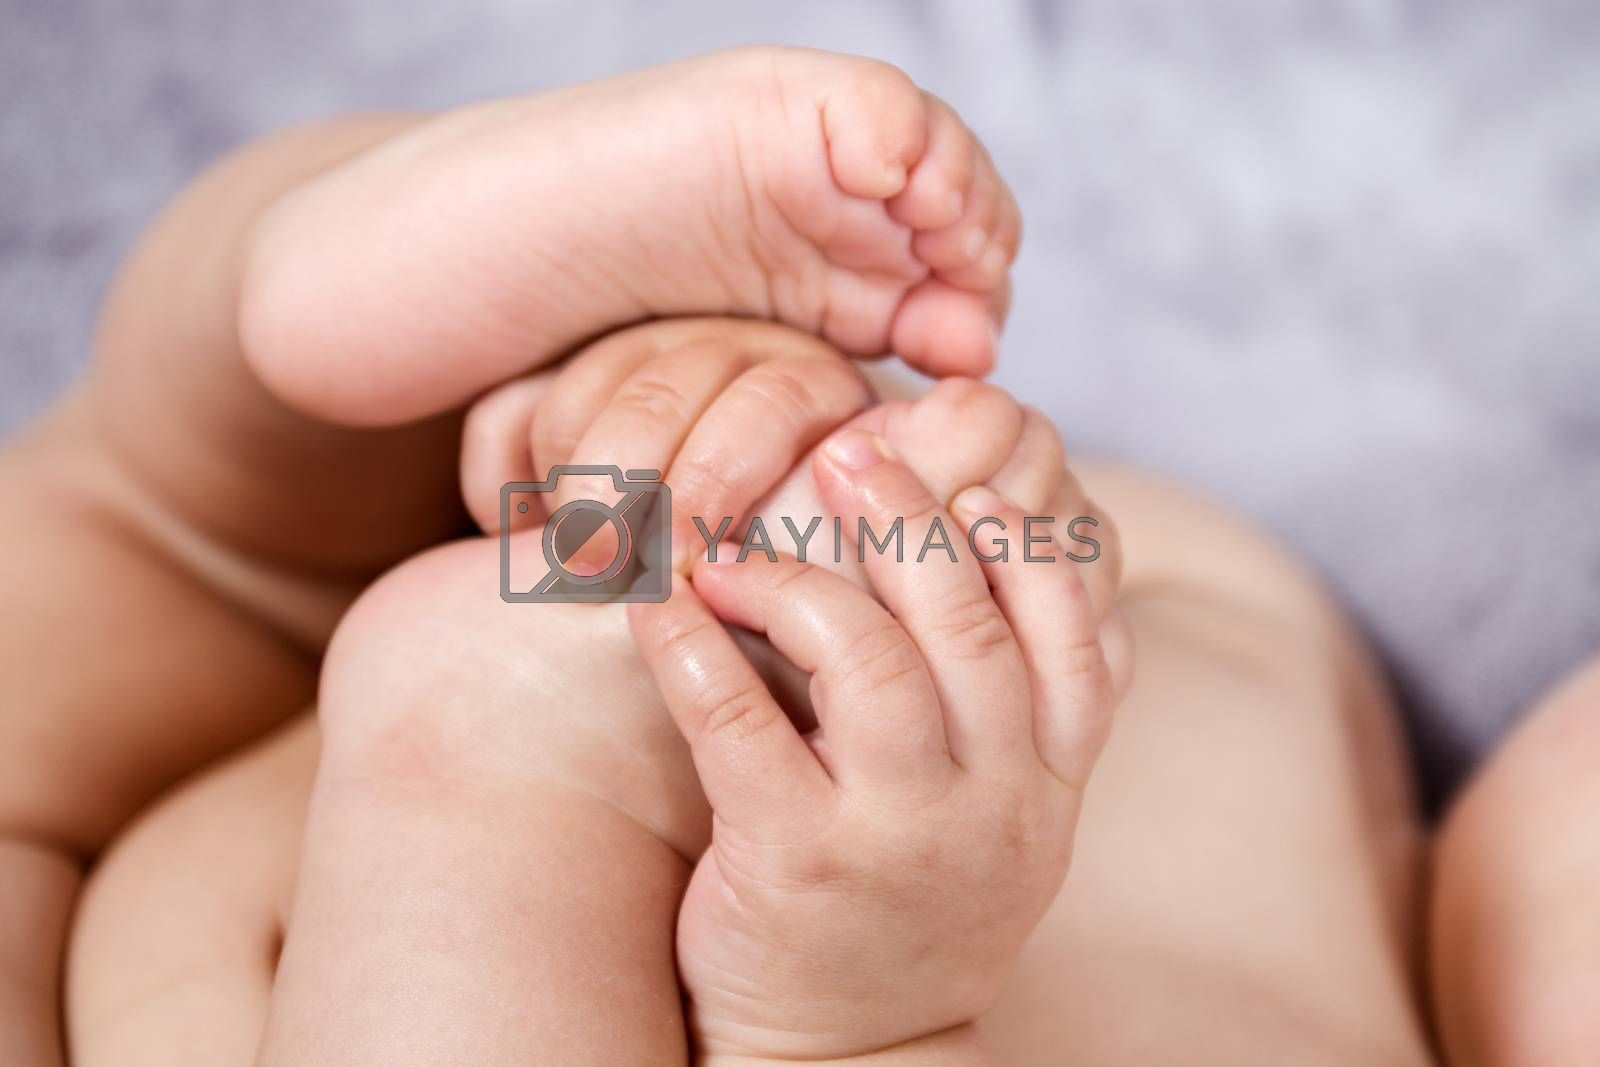 Close up of baby hands and feet of a newborn baby.